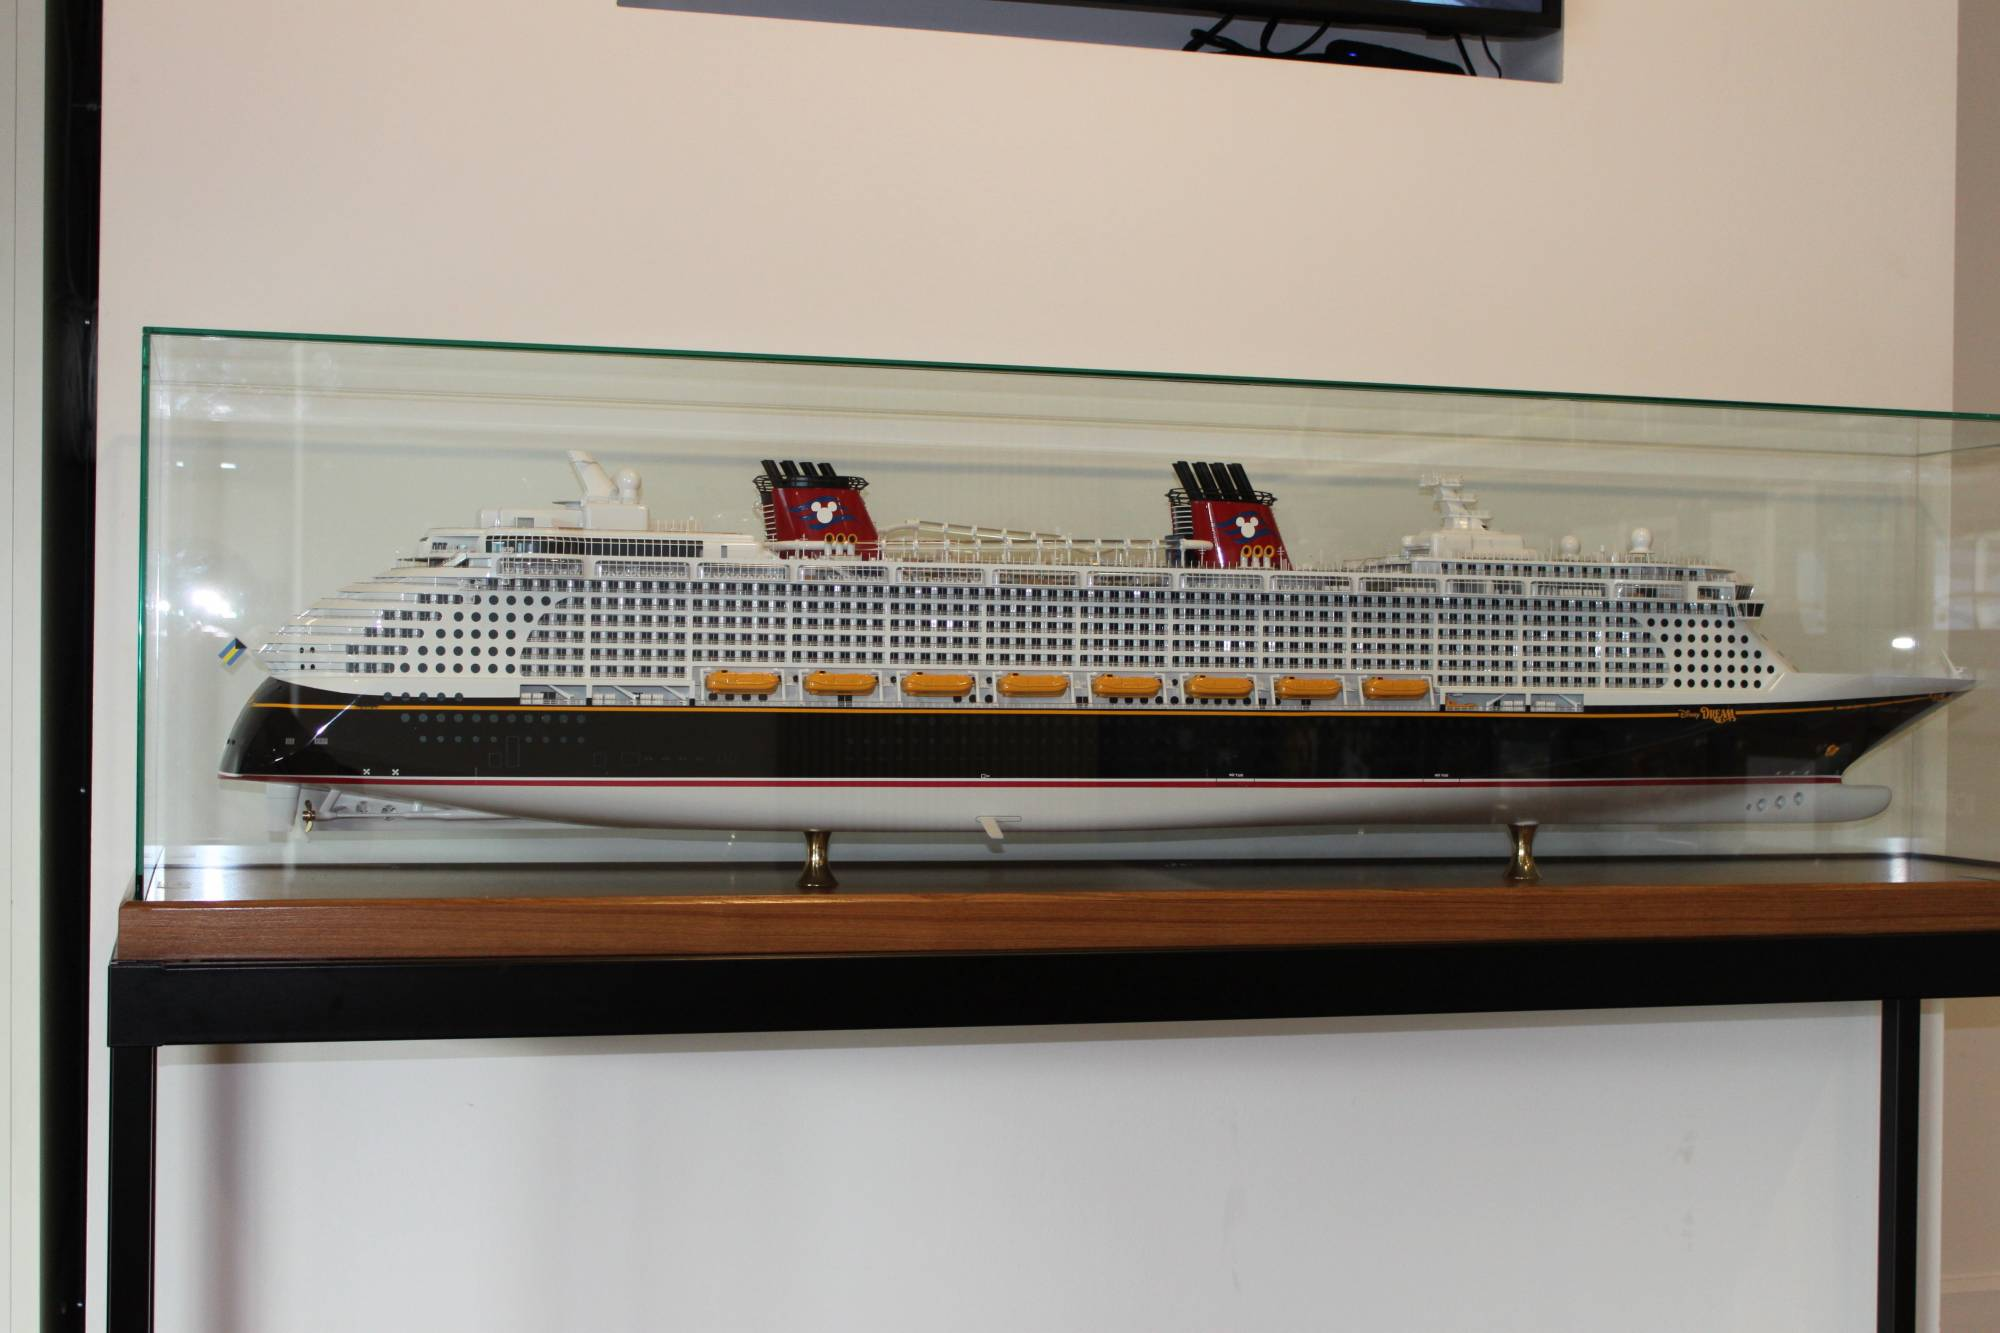 Model of the Disney Dream